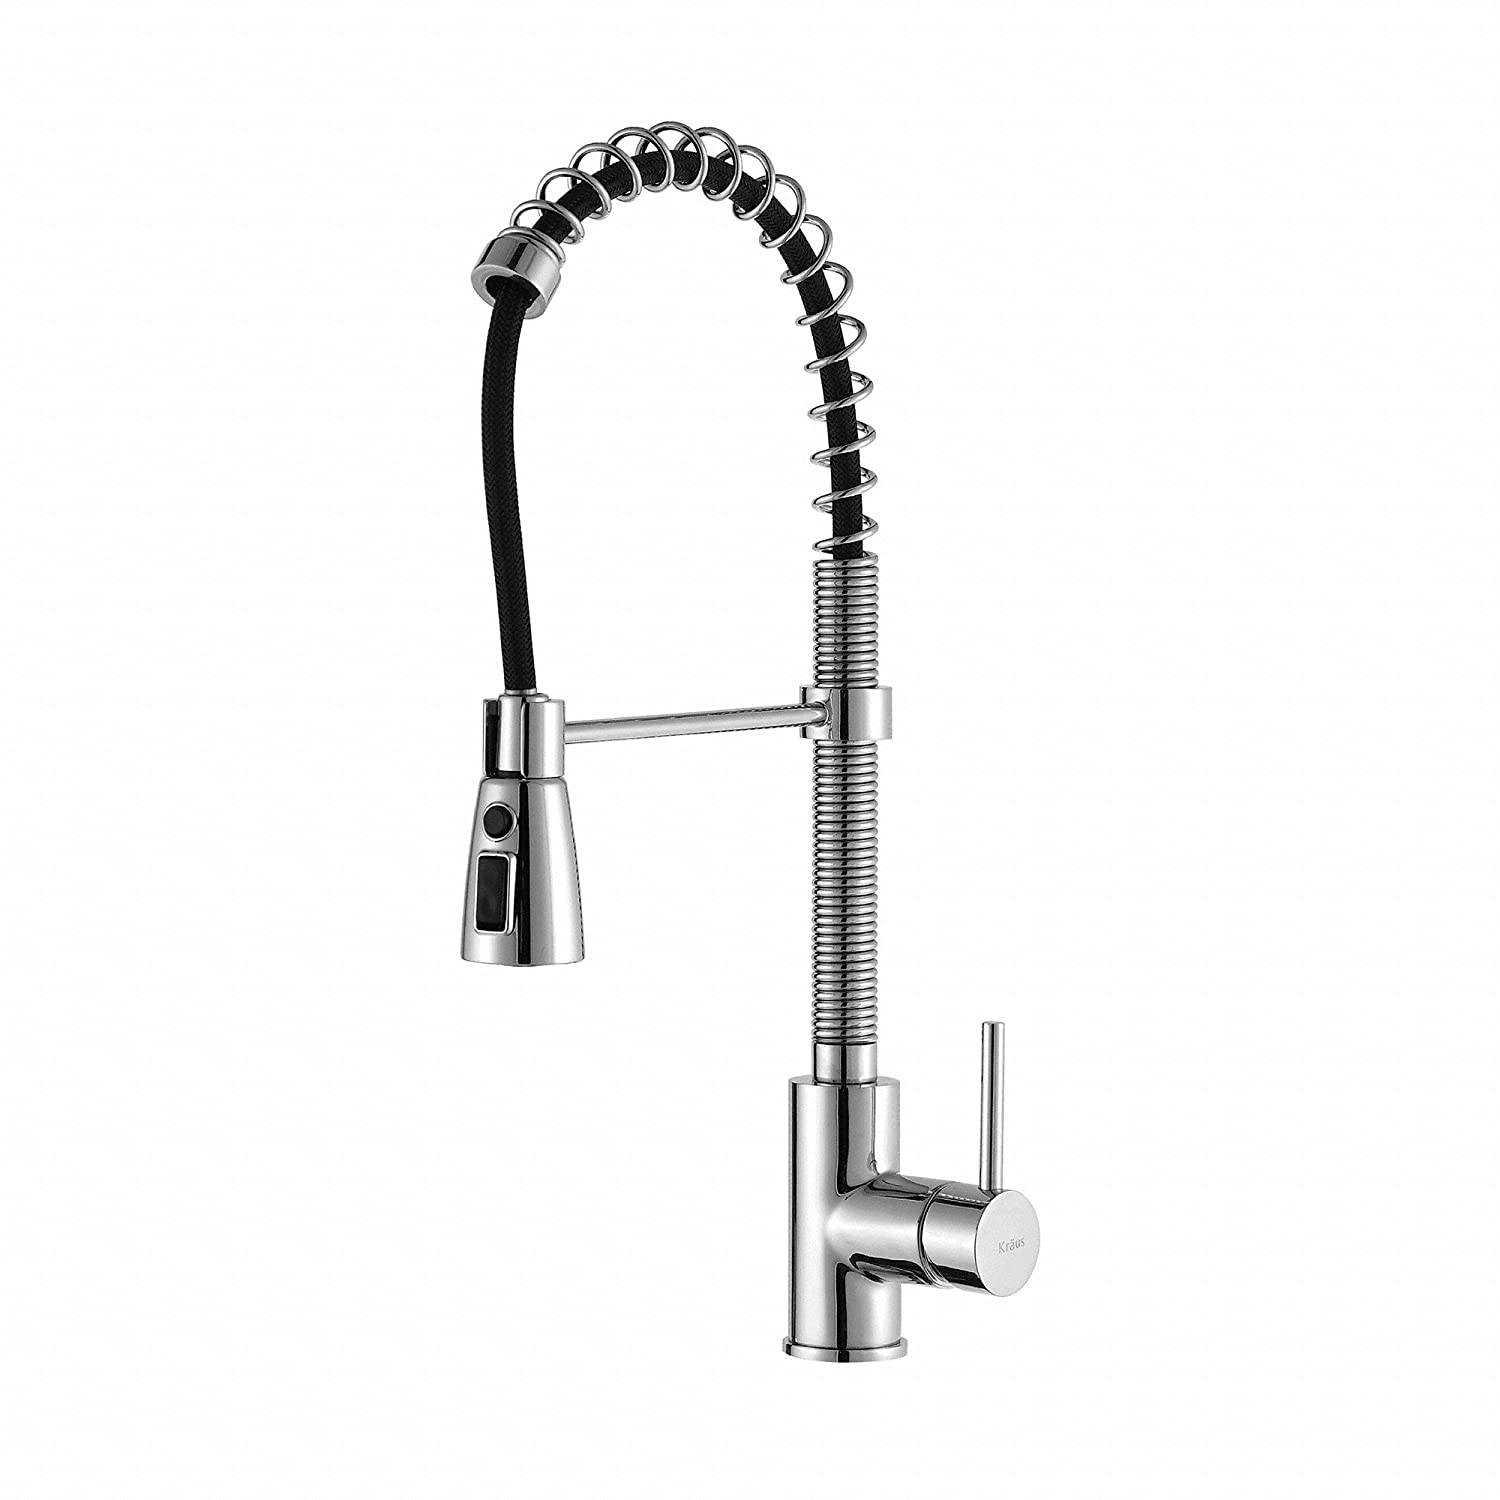 soap expressdecor with inch single com farmhouse sink faucets dispenser kraus and chrome kitchen stainless bowl faucet steel